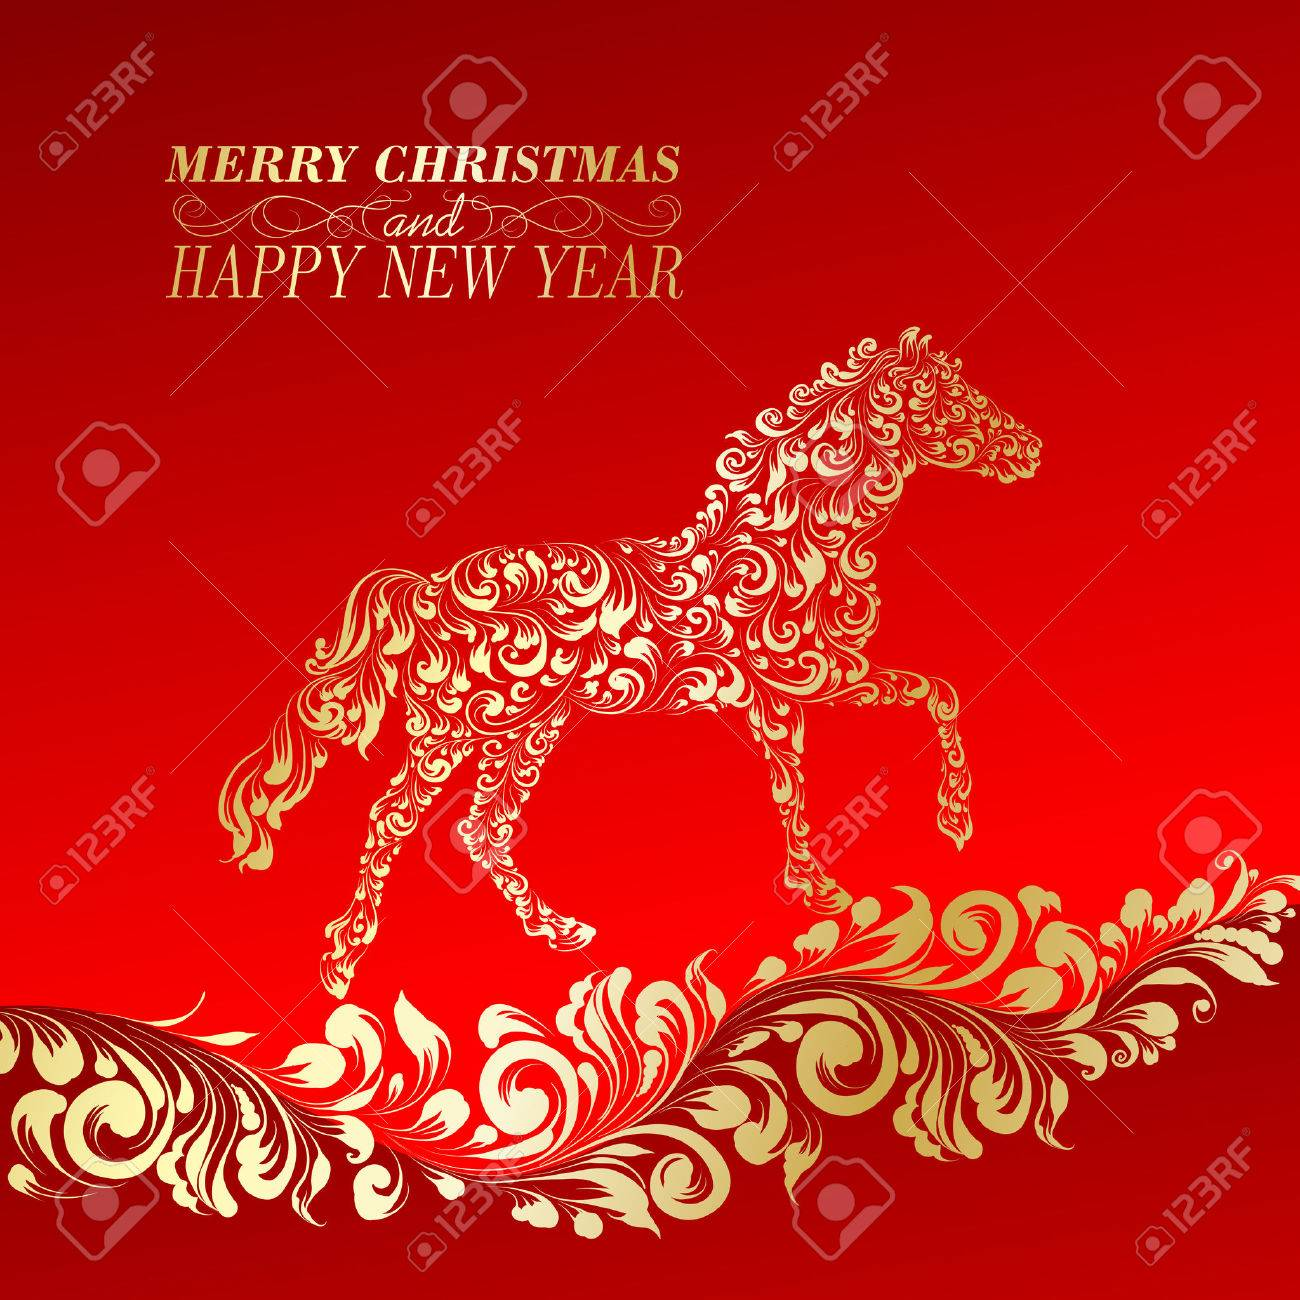 Christmas Greeting Card. Vintage card with horse. Vector illustration. Stock Vector - 24340665